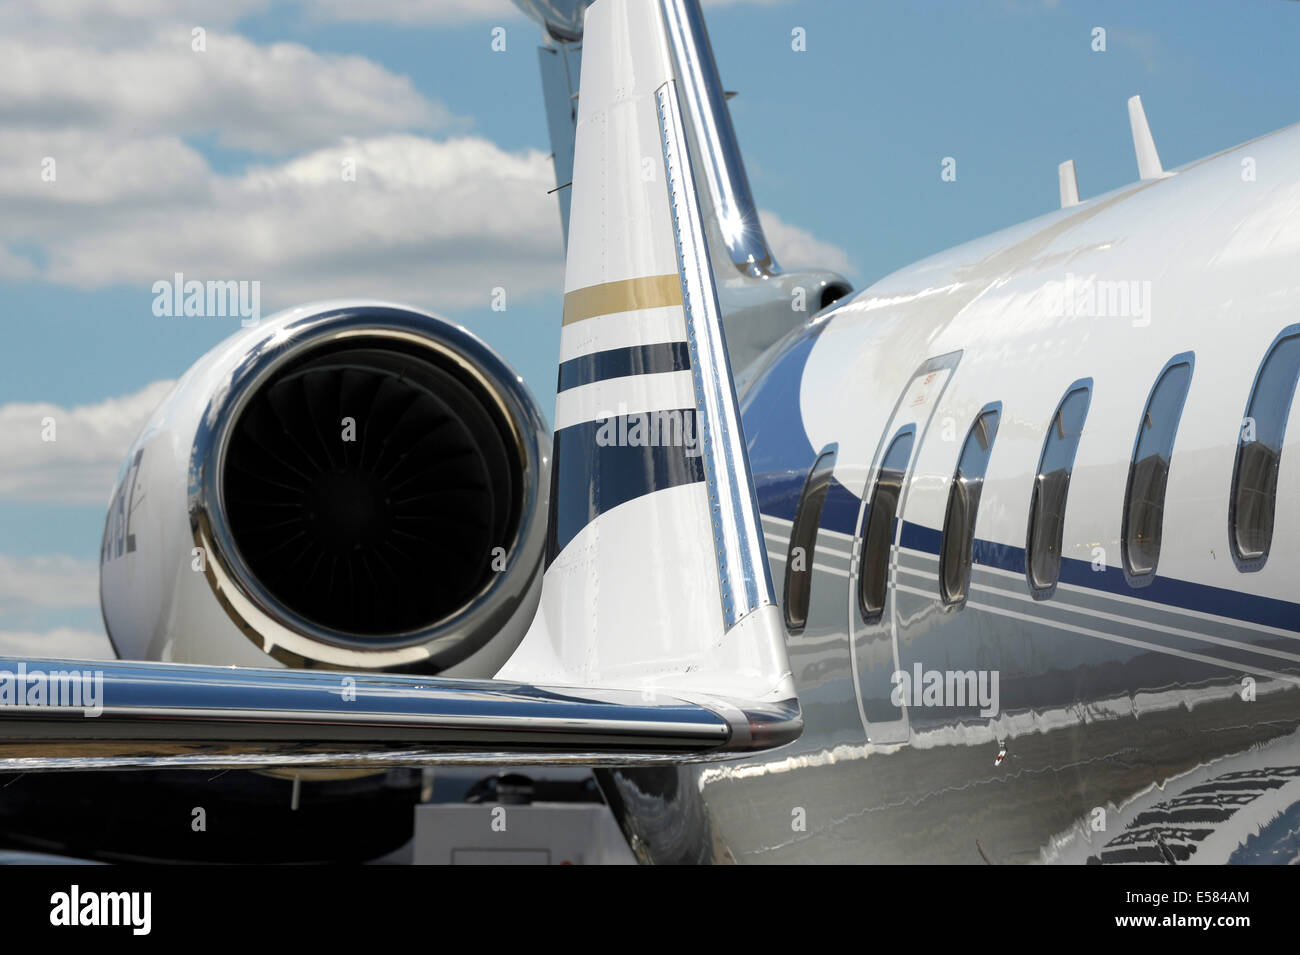 Bombardier Global 6000 Aircraft - Stock Image